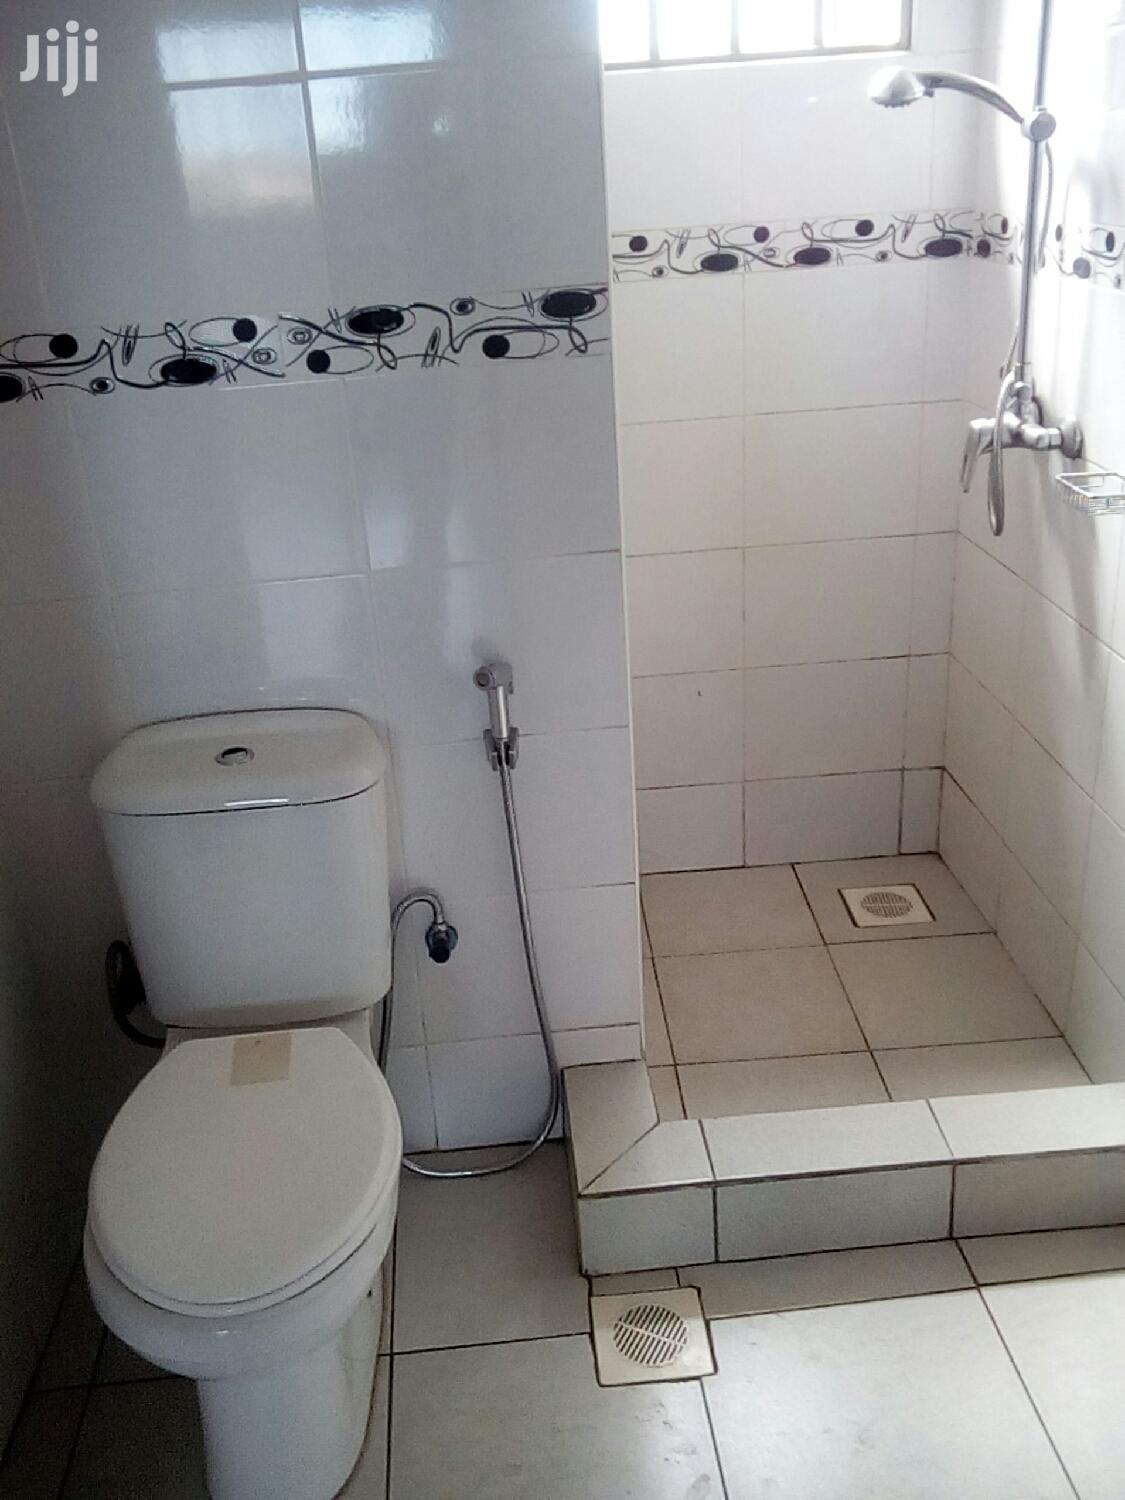 Three Bedrooms Apartiment For Rent In Ntinda   Houses & Apartments For Rent for sale in Kampala, Central Region, Uganda